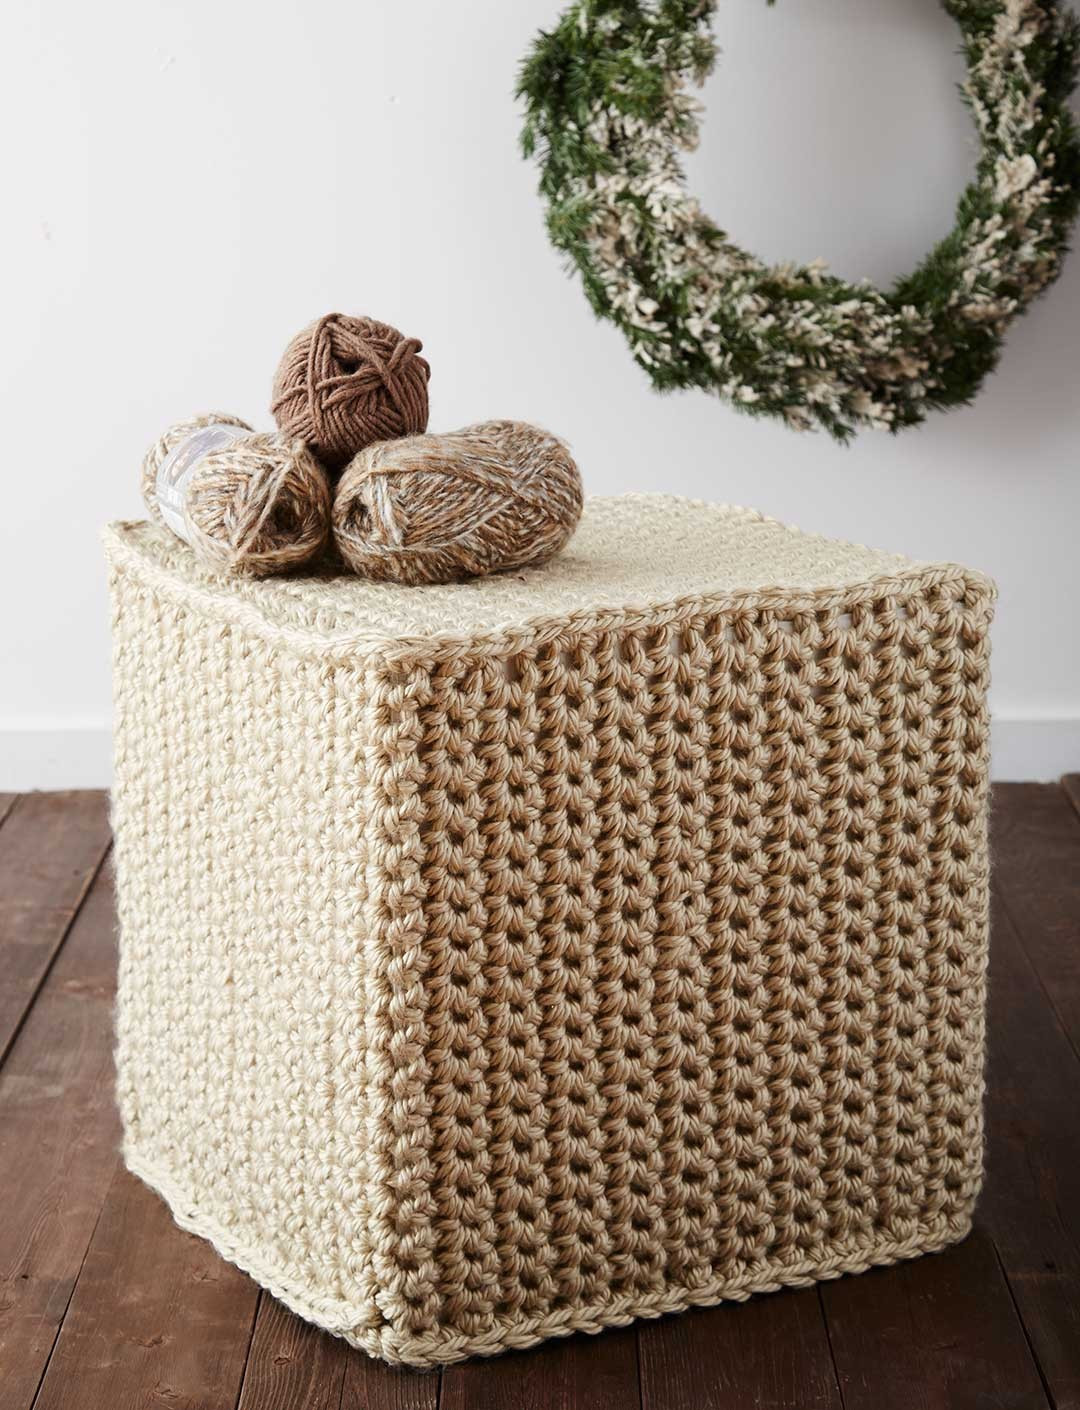 Bernat Crochet Patterns Beautiful Bernat Mega Crochet Ottoman Crochet Pattern Of Awesome 45 Photos Bernat Crochet Patterns